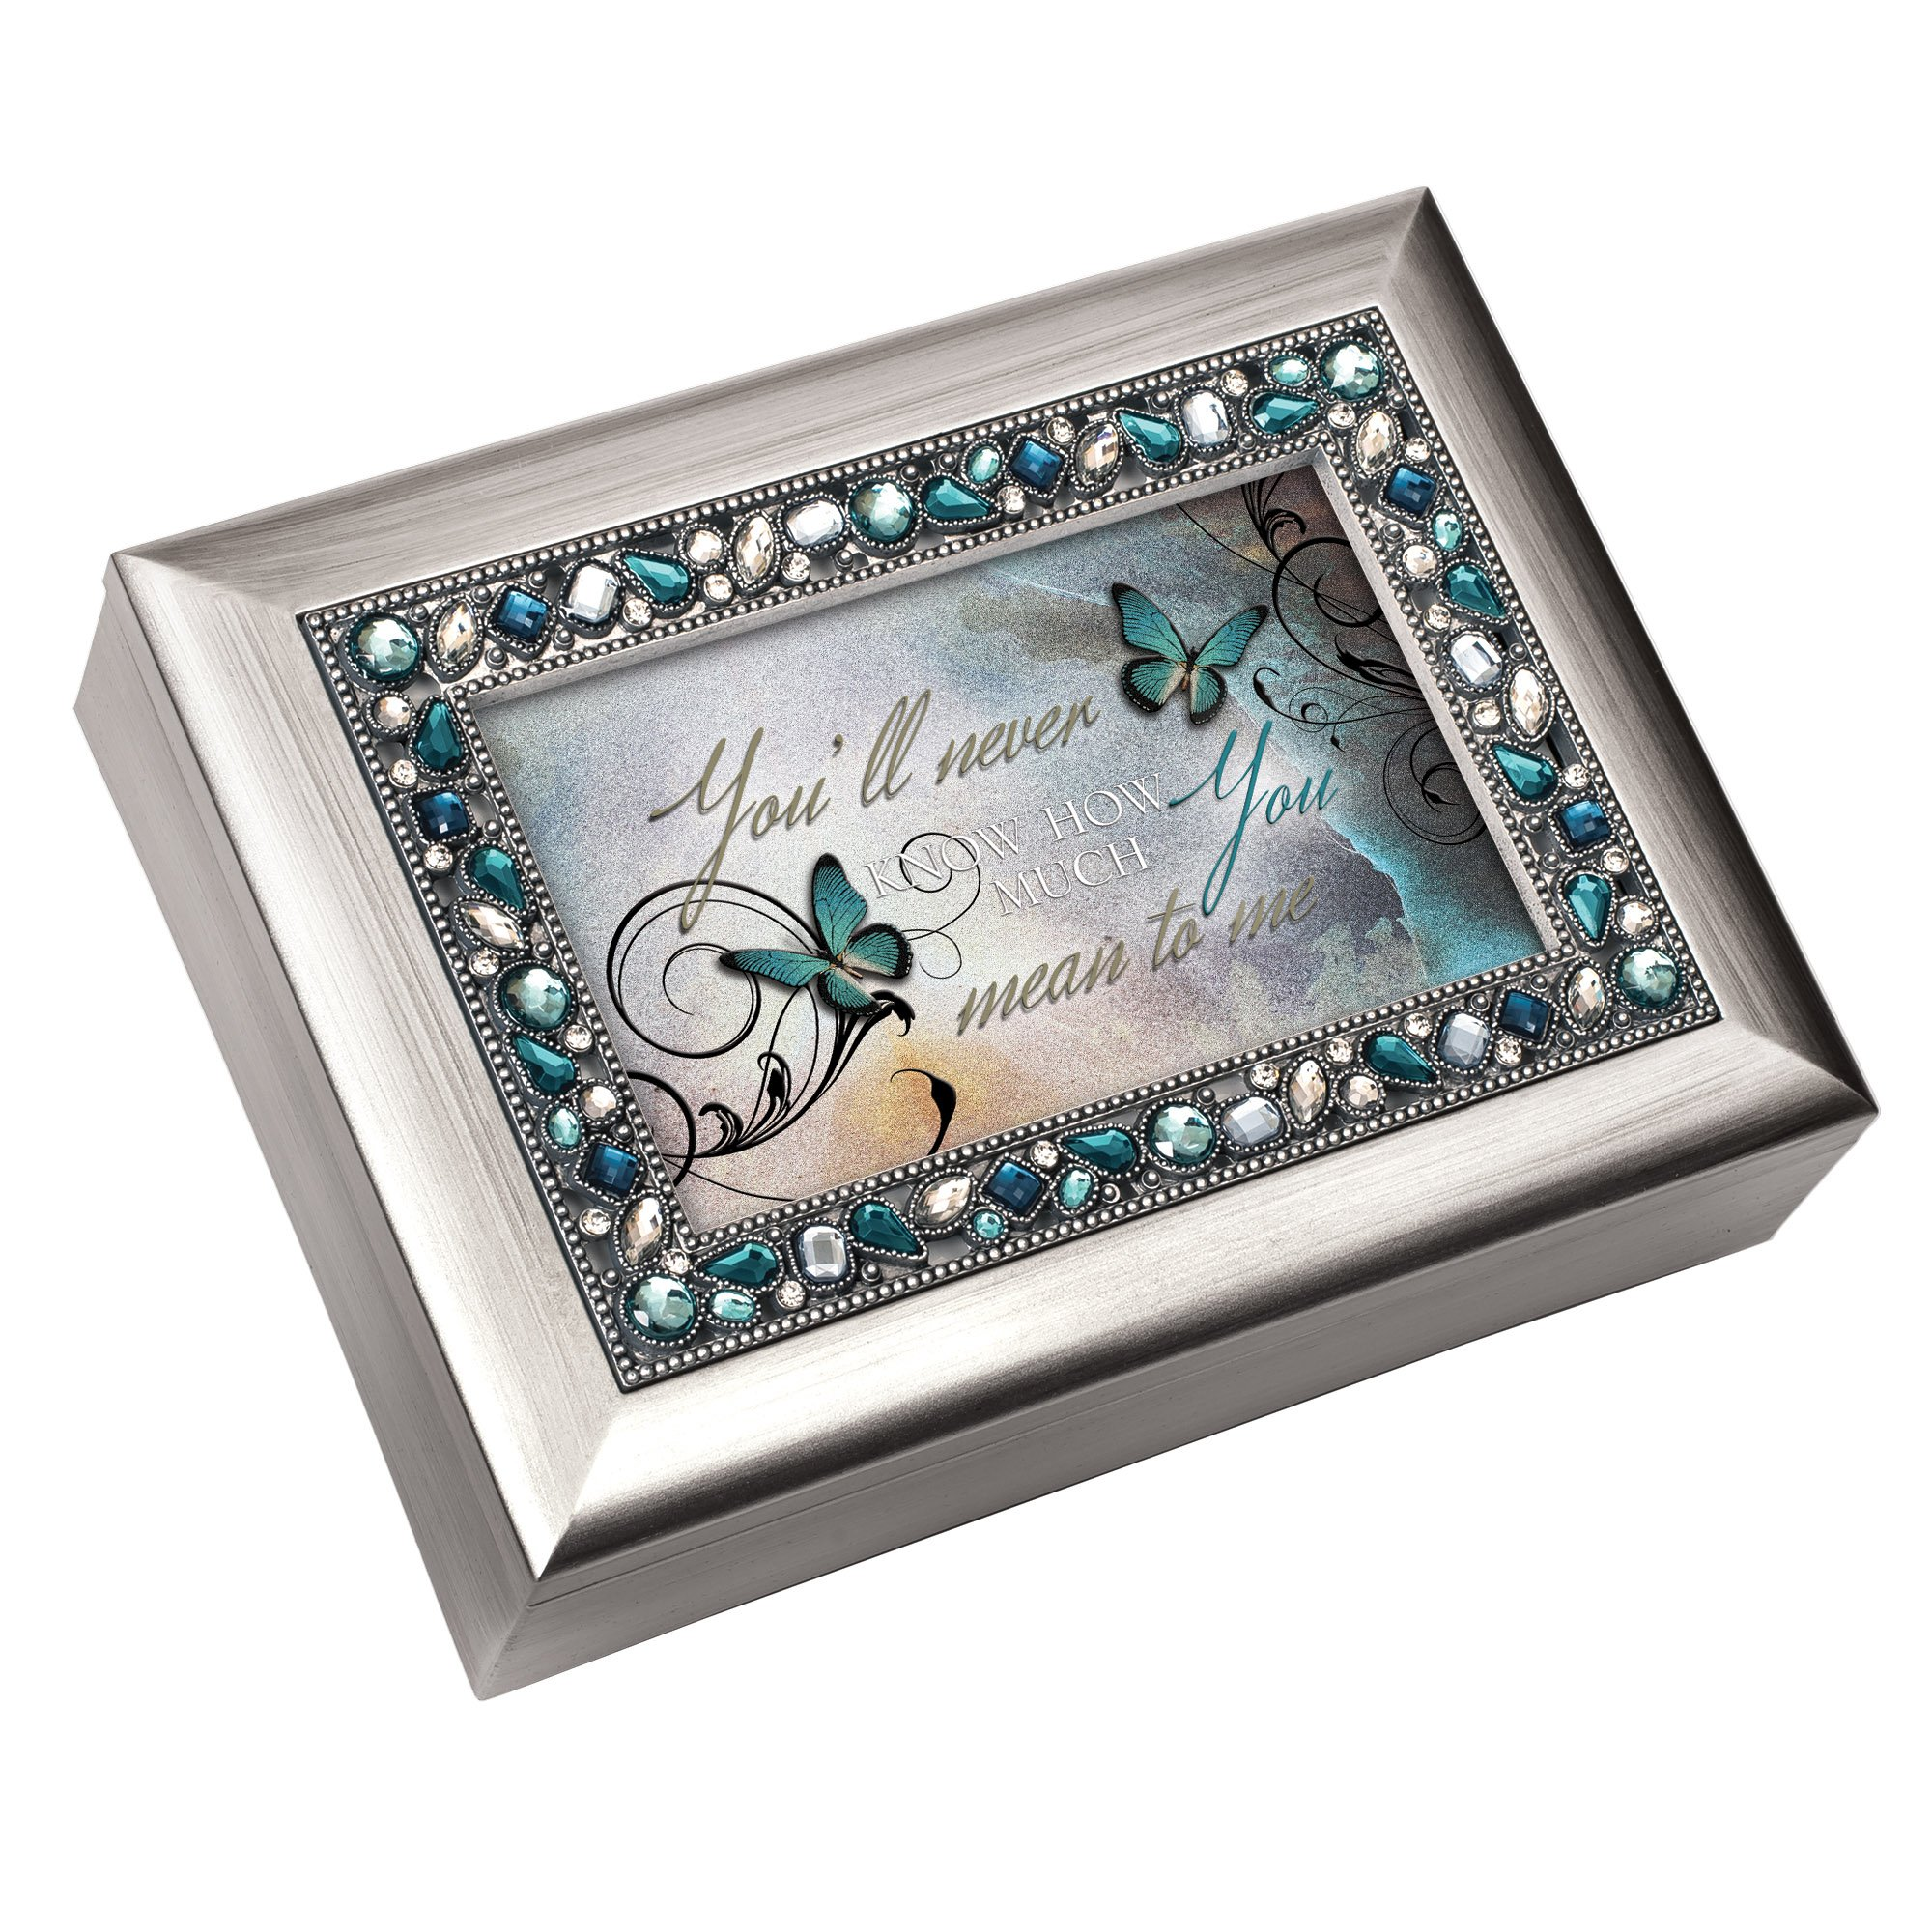 Cottage Garden Never Know How Much You Mean to Me Brushed Silvertone Jewelry Music Box Plays Wonderful World